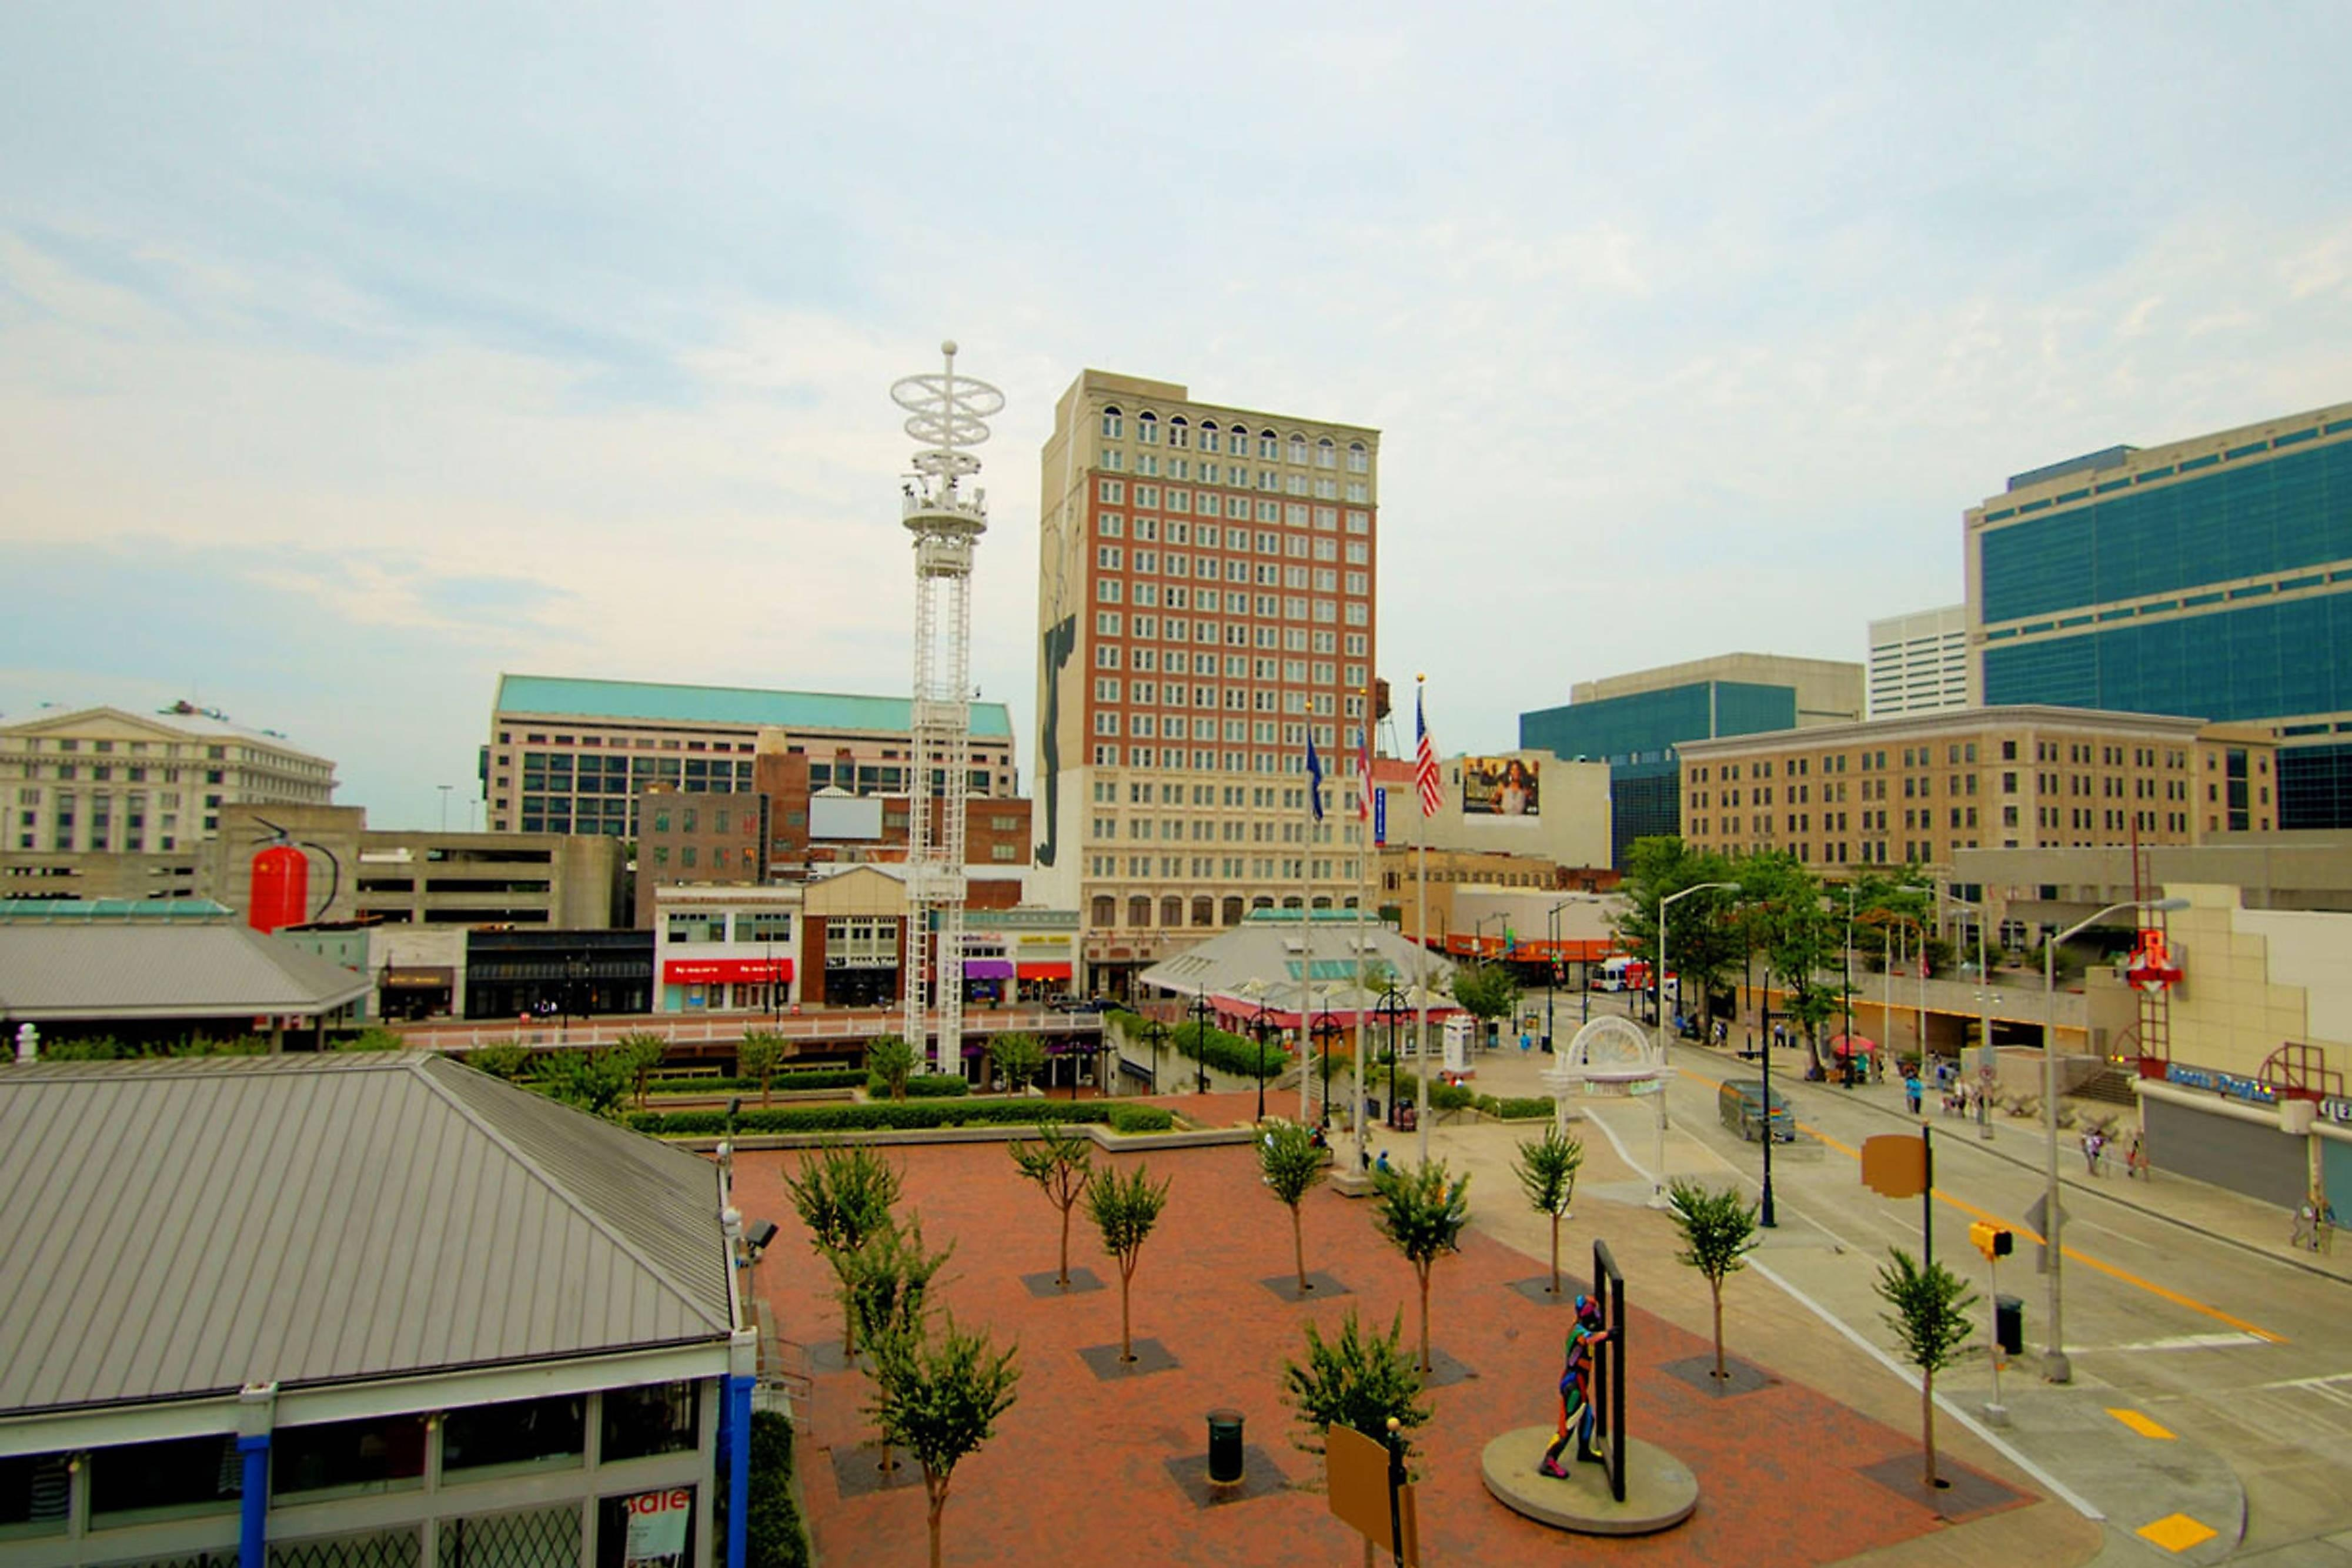 The Fairfield Inn & Suites Atlanta Downtown is conveniently located to several Atlanta area attractions and businesses.